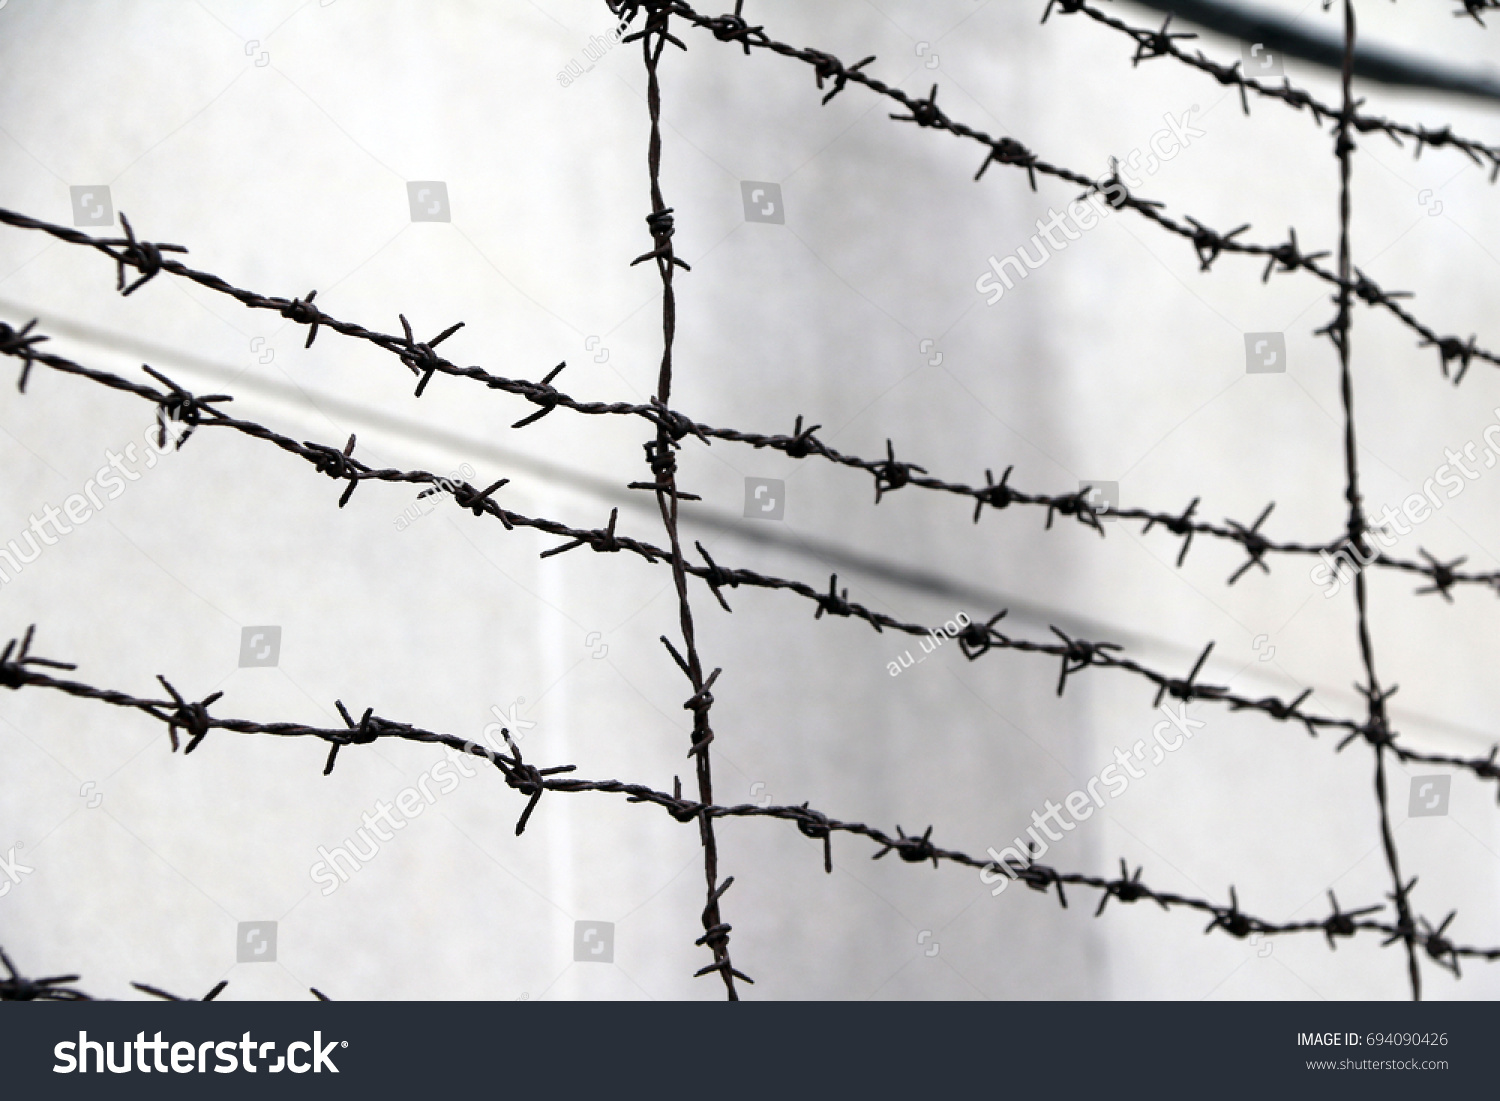 Rusty Barbed Wire Isolated On Out Stock Photo 694090426 - Shutterstock